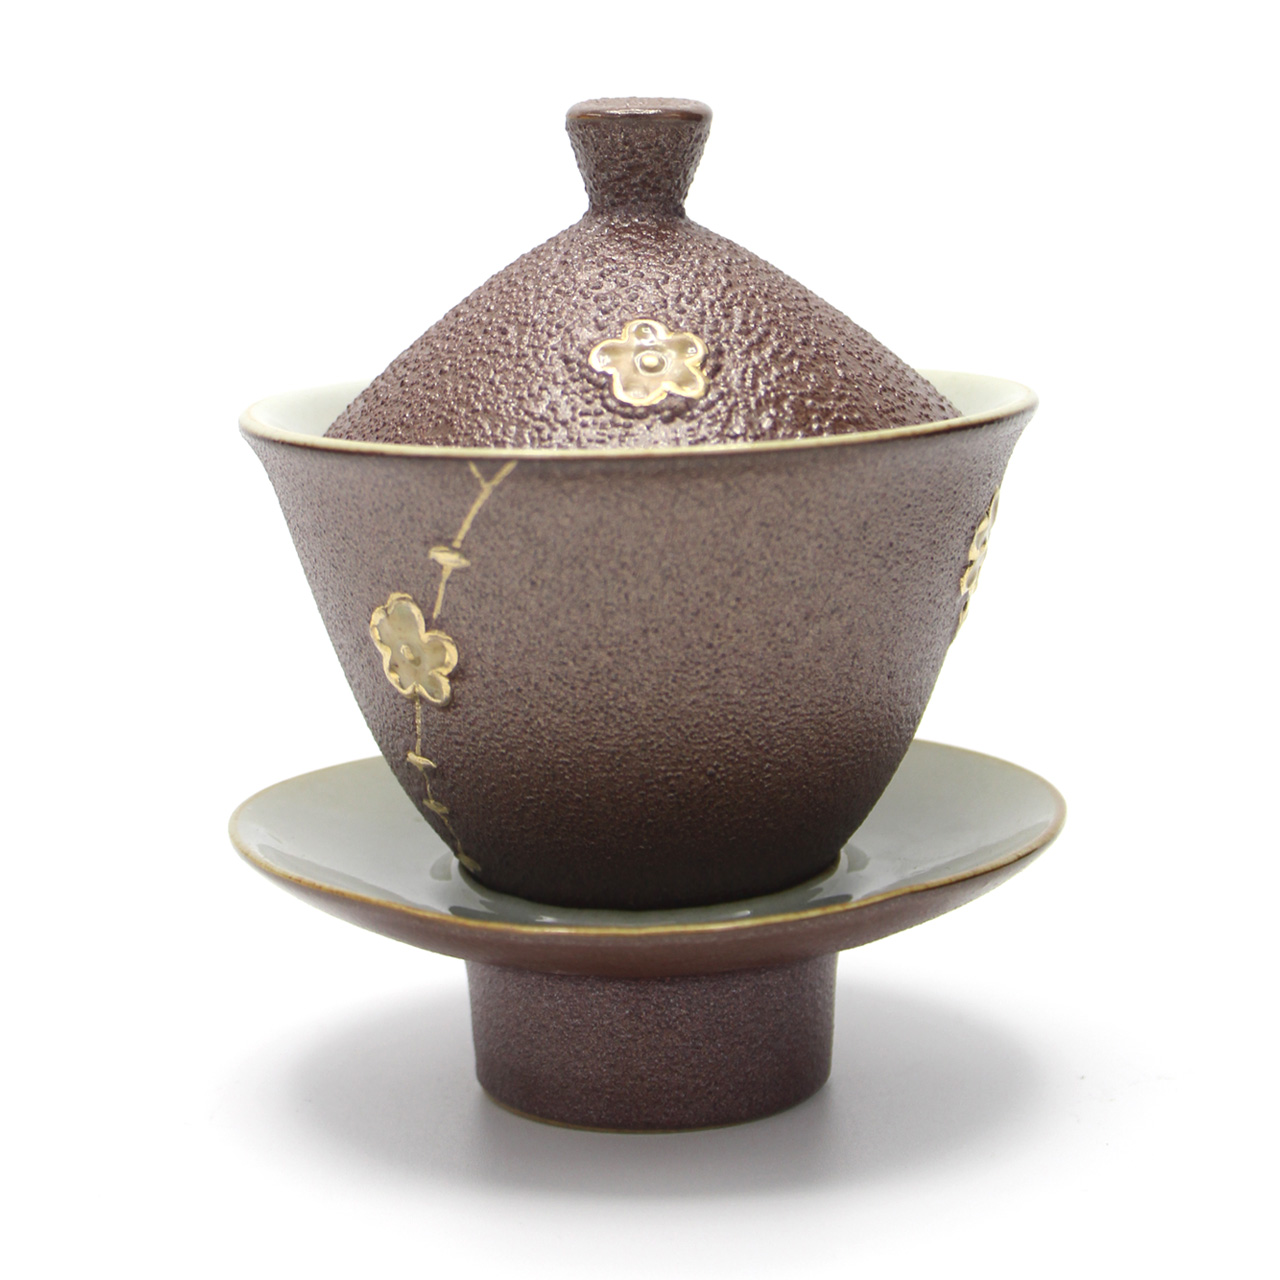 Firewood large tea cup kung fu tea ceramic tureen with god has tureen antique handmade stoneware pottery tureen